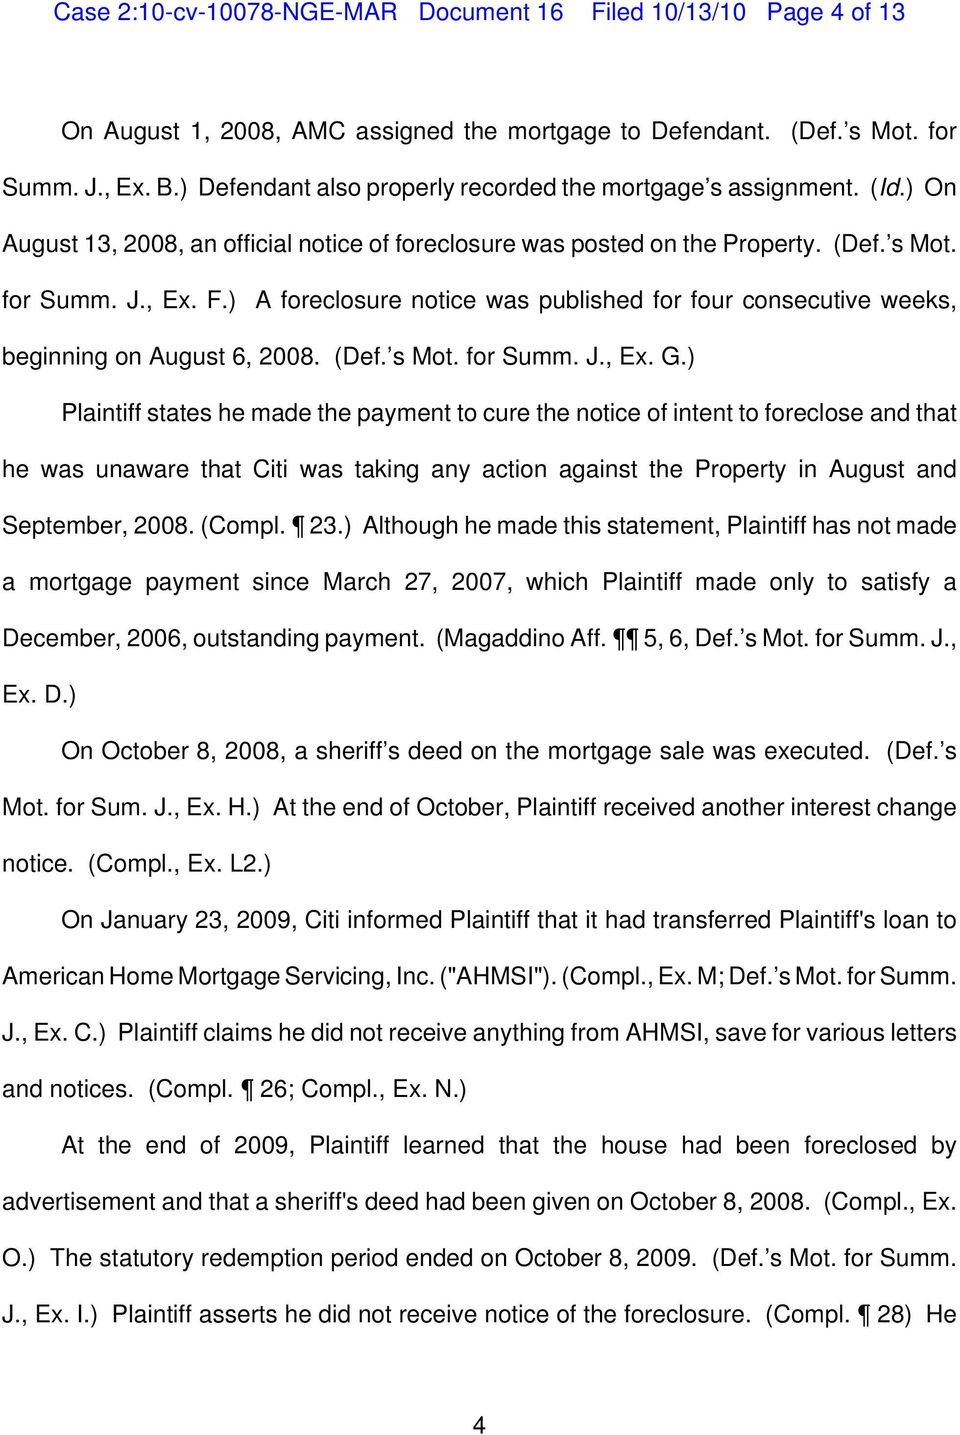 ) A foreclosure notice was published for four consecutive weeks, beginning on August 6, 2008. (Def. s Mot. for Summ. J., Ex. G.